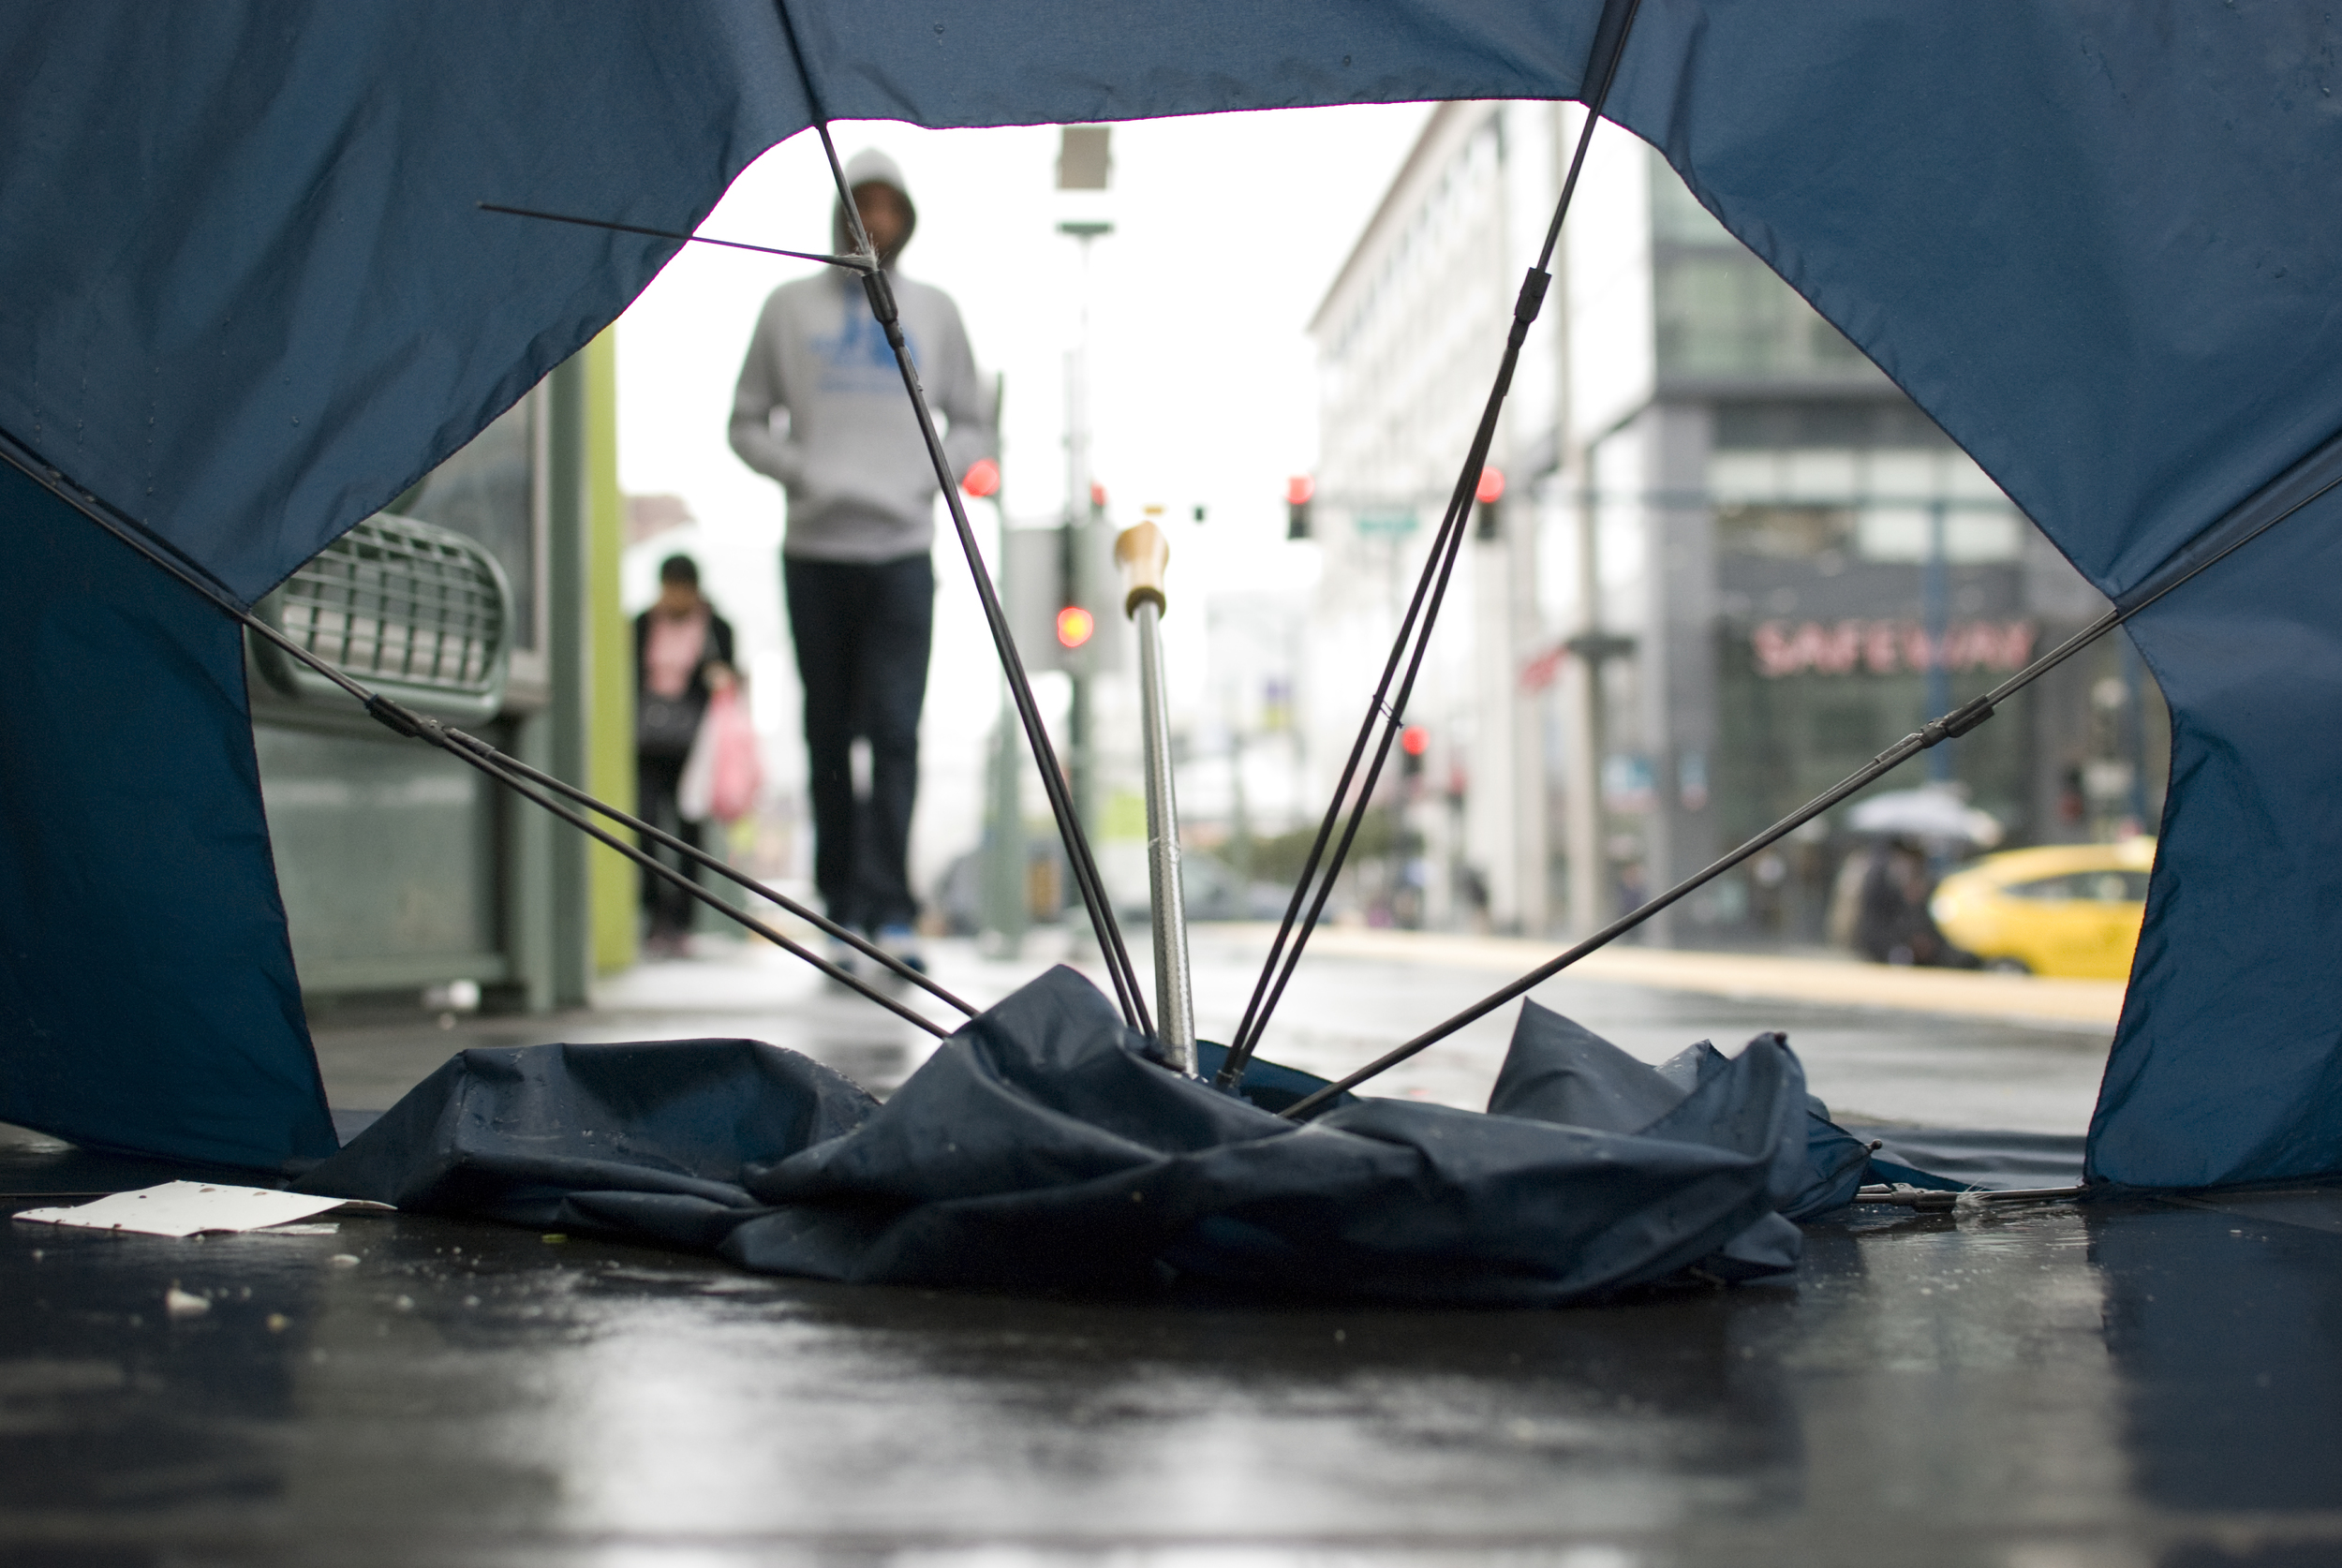 A man walks towards an abandoned, weather-battered umbrella on the outbound side of the K/T light rail platform at 4th Street at King Street in San Francisco's South Beach Wednesday, Mar. 14, 2012.